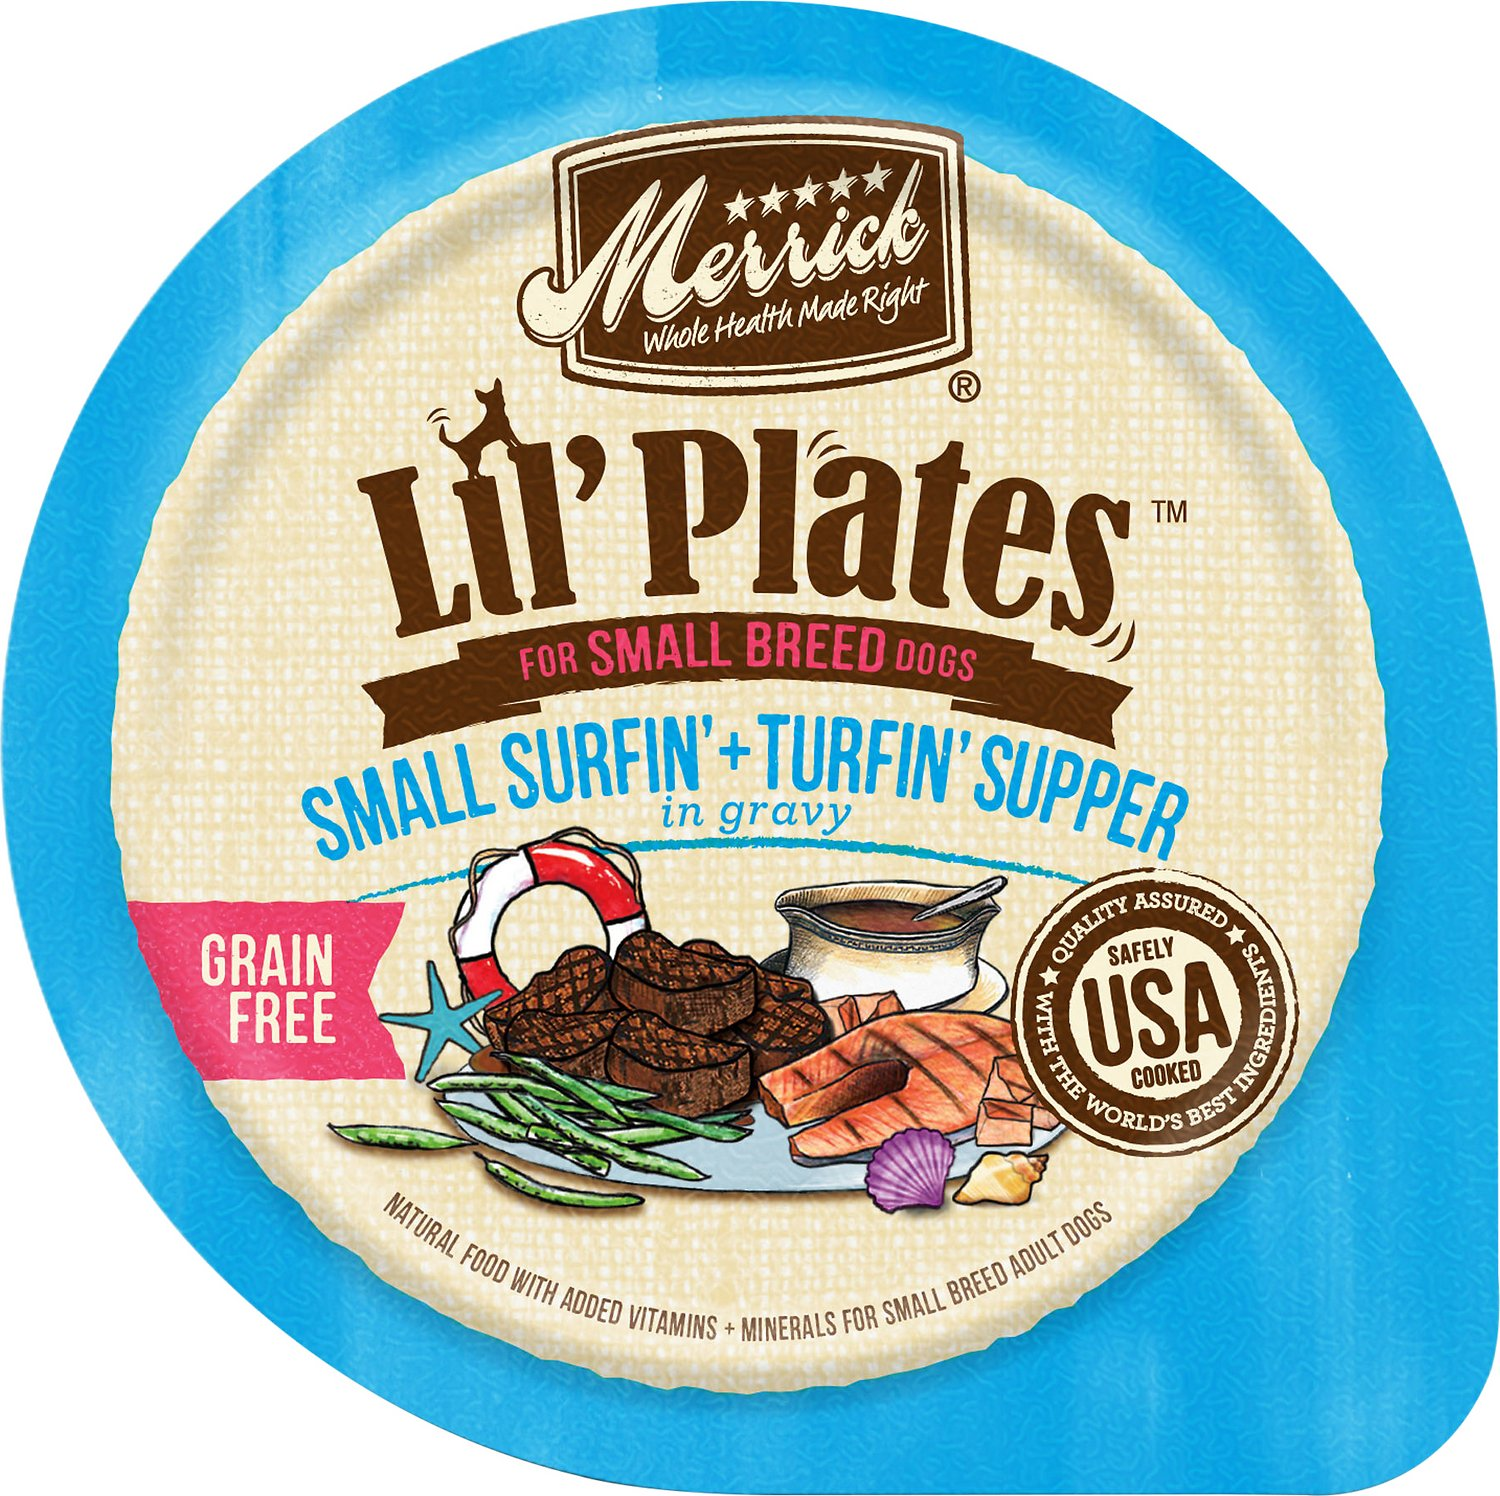 Merrick Lil' Plates Small Surfin' & Turfin' Supper in Gravy Grain-Free Dog Food Trays Image